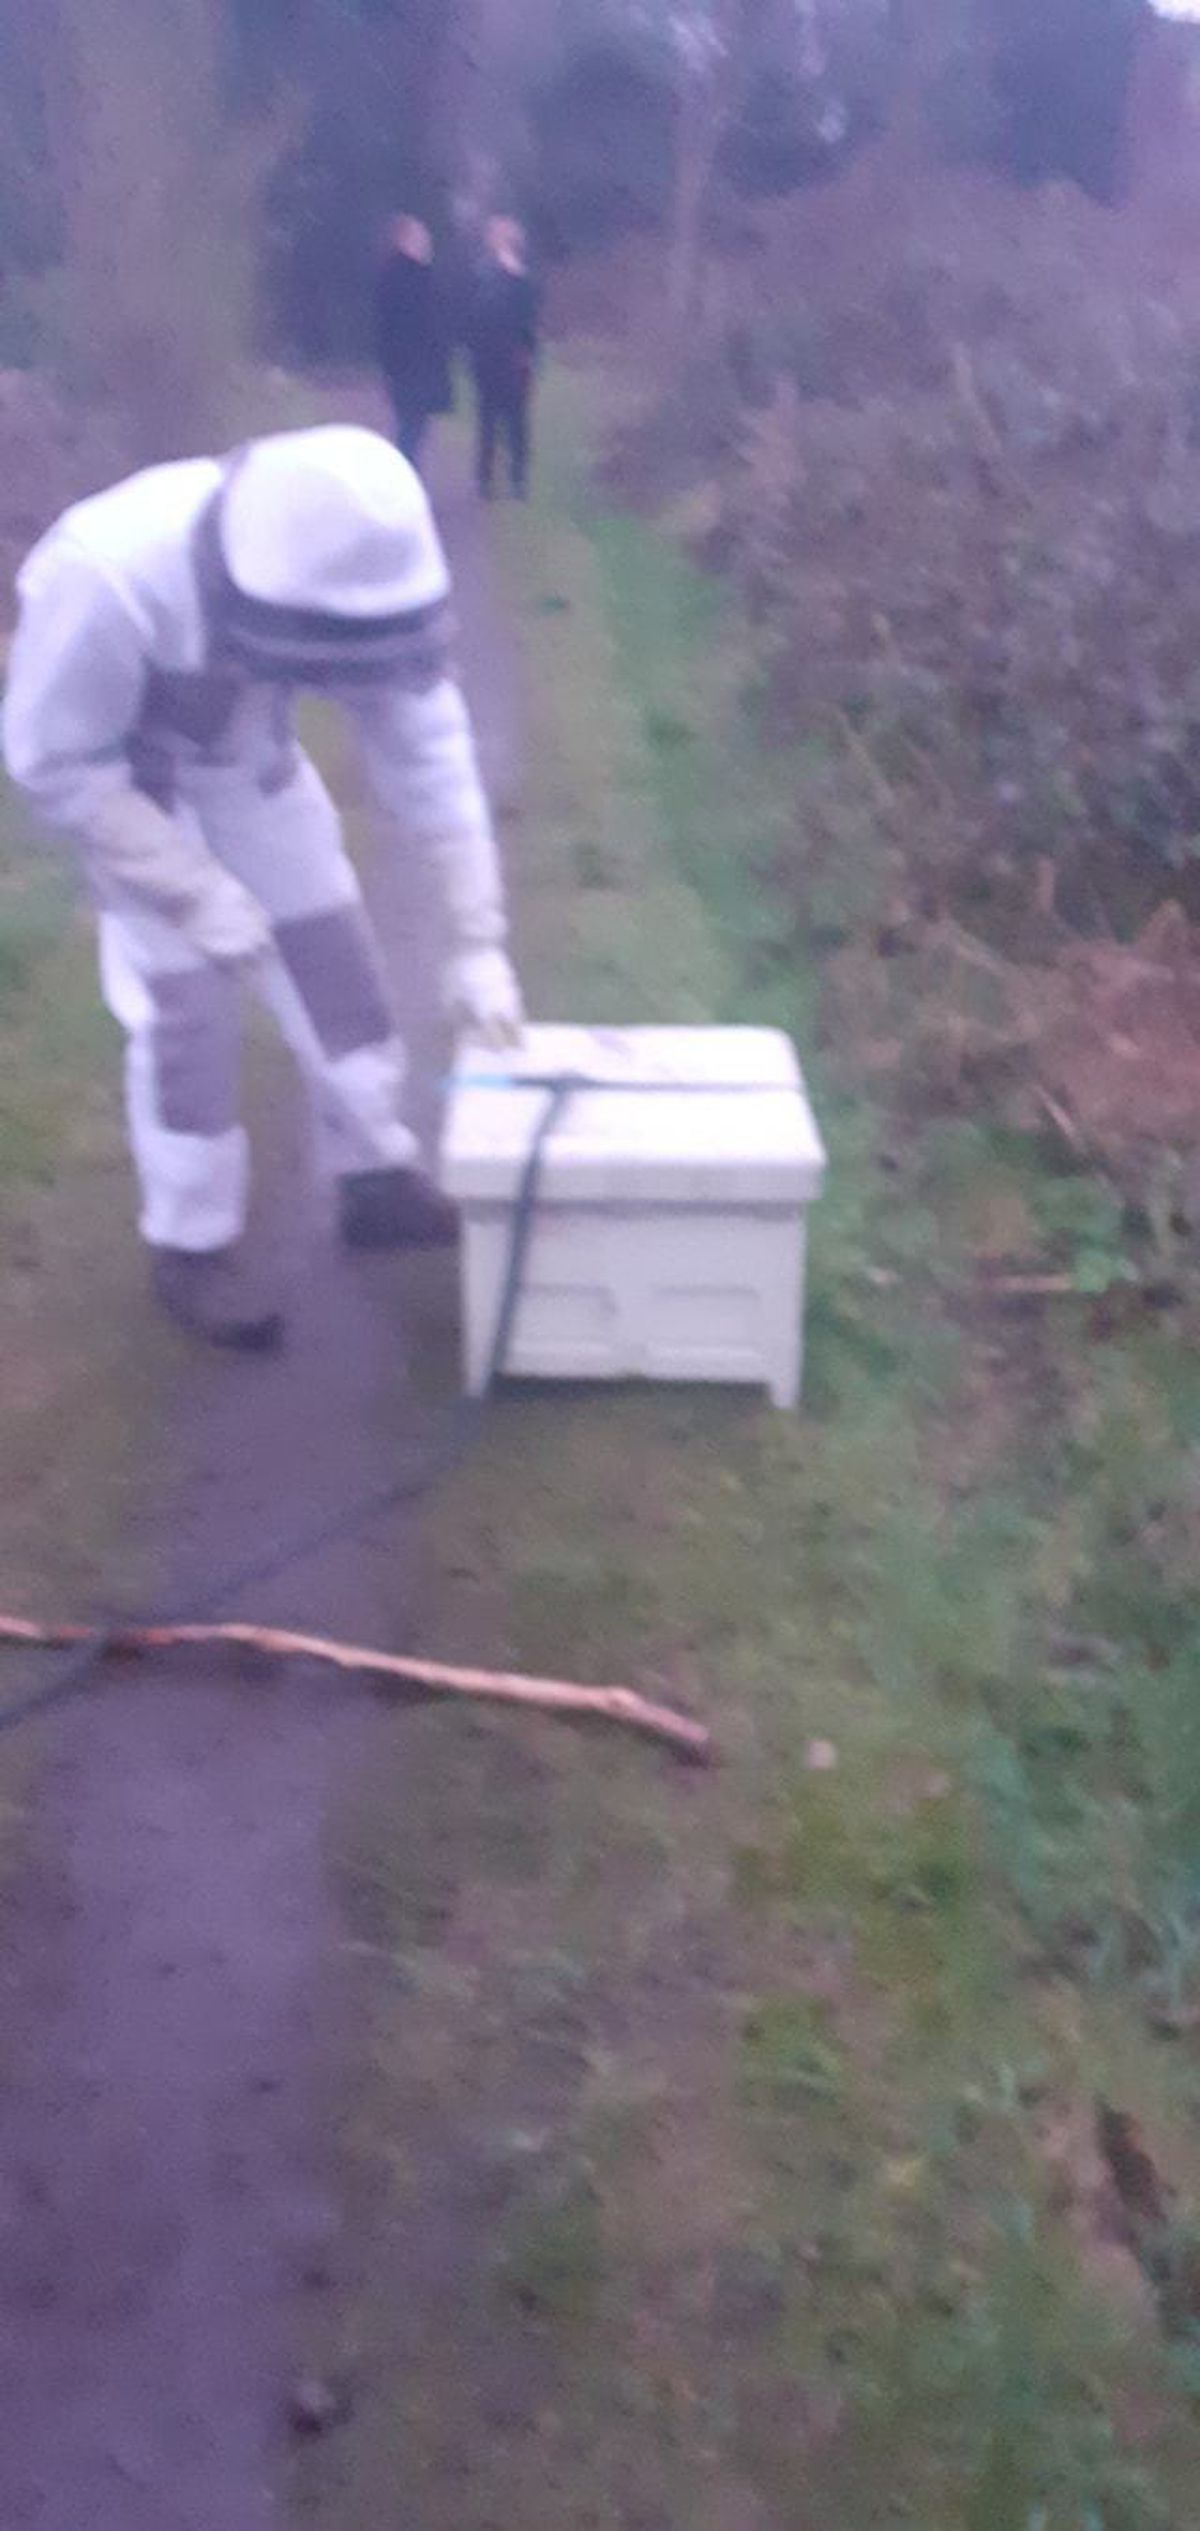 Beekeeper Daniel Minton putting the smashed hive back together